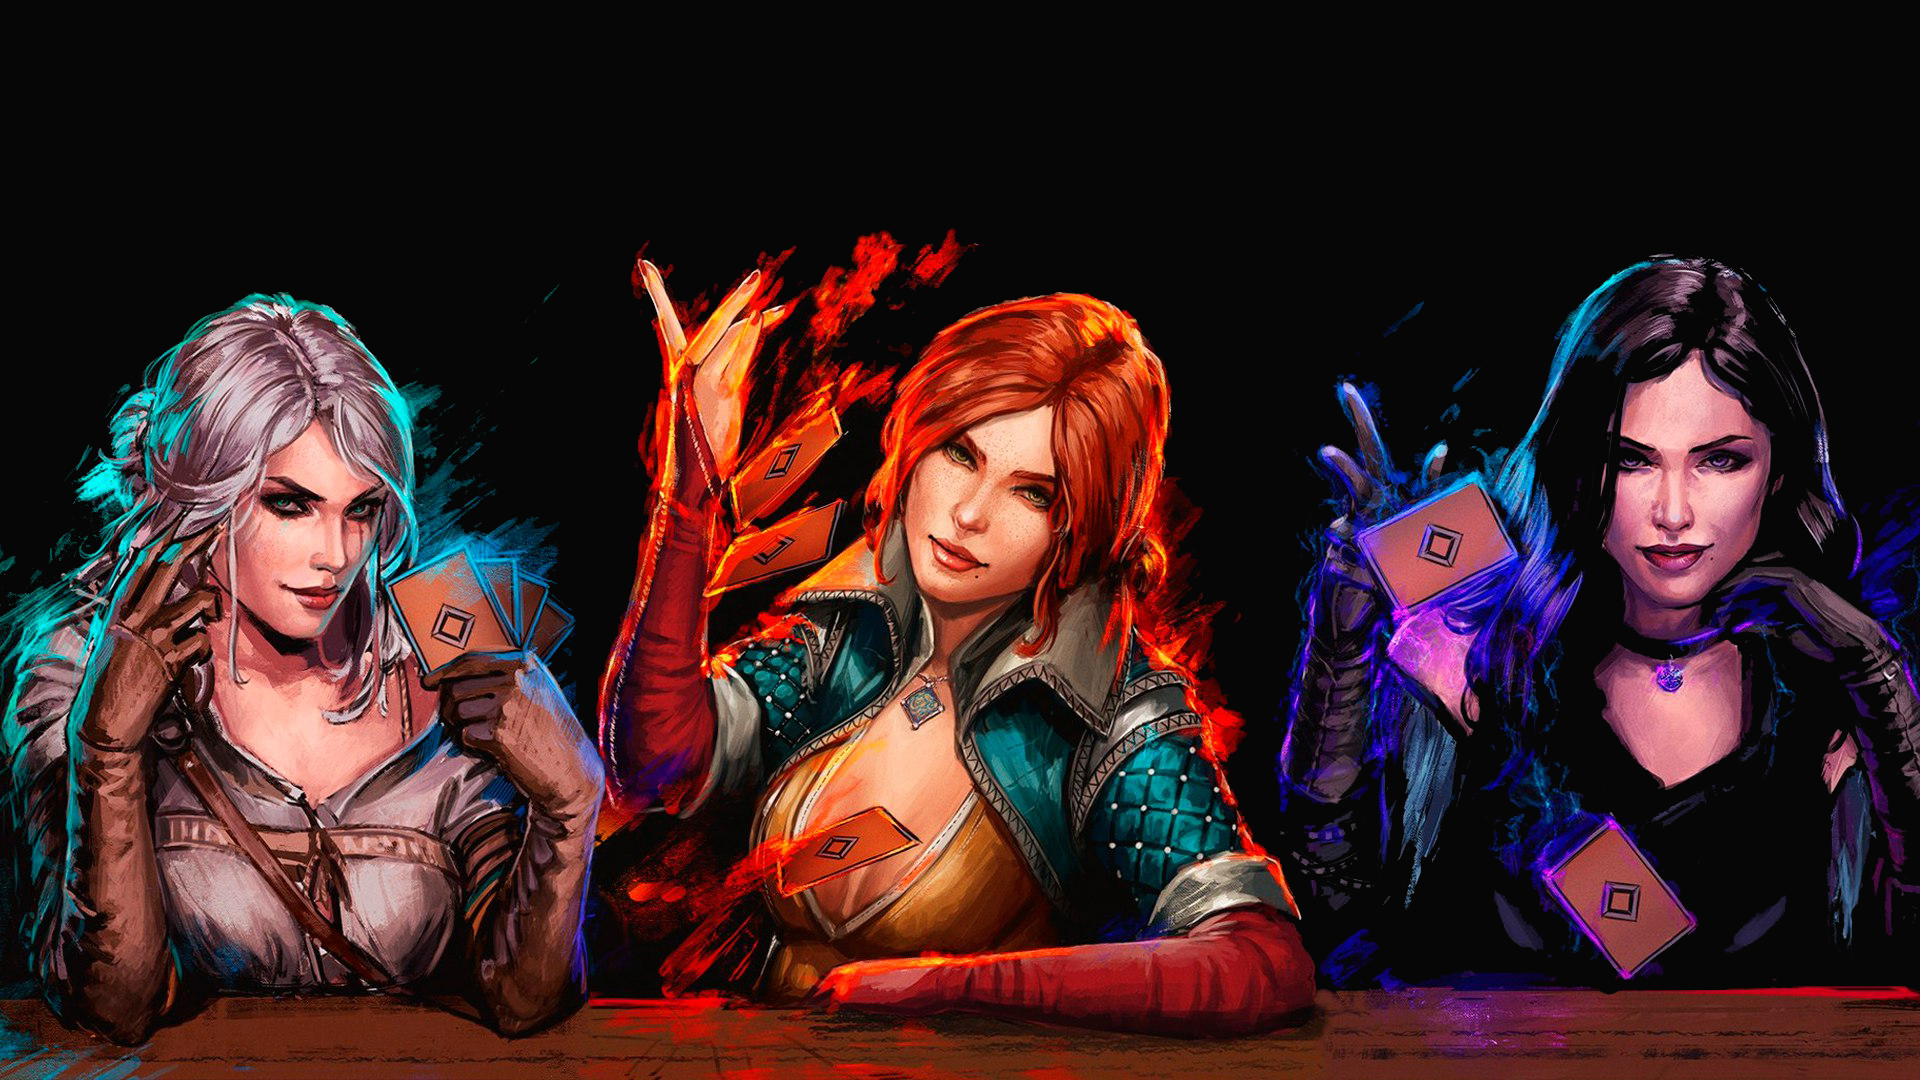 Gwent: The Witcher Card Game Wallpaper